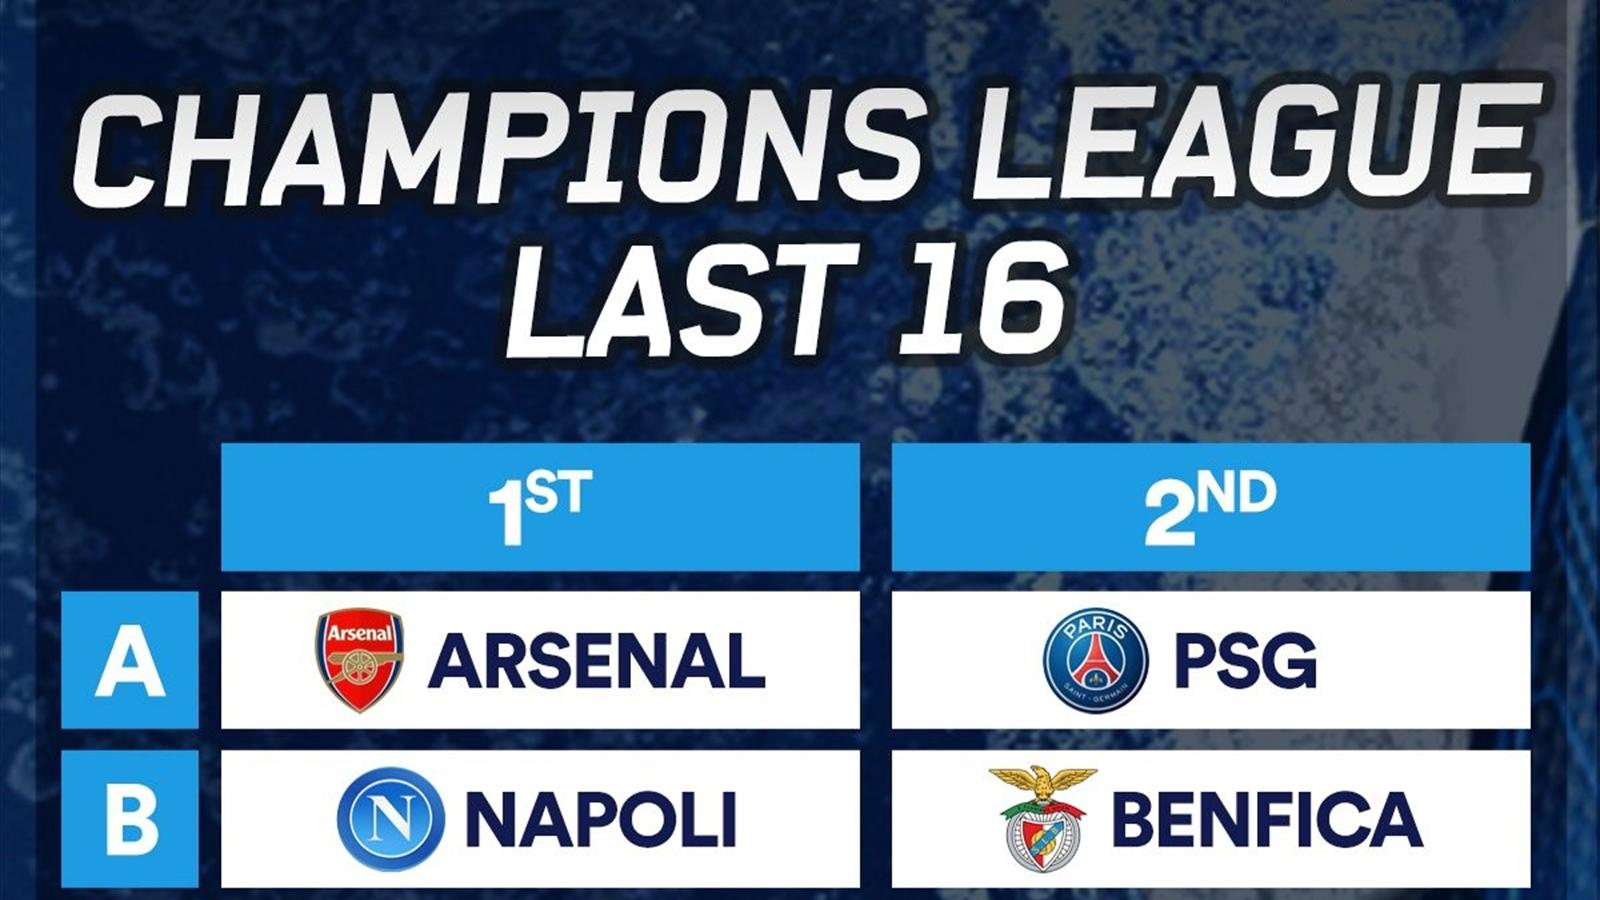 Champions League Draw: Champions League Last 16 Draw 2016: When Is It? Who Can